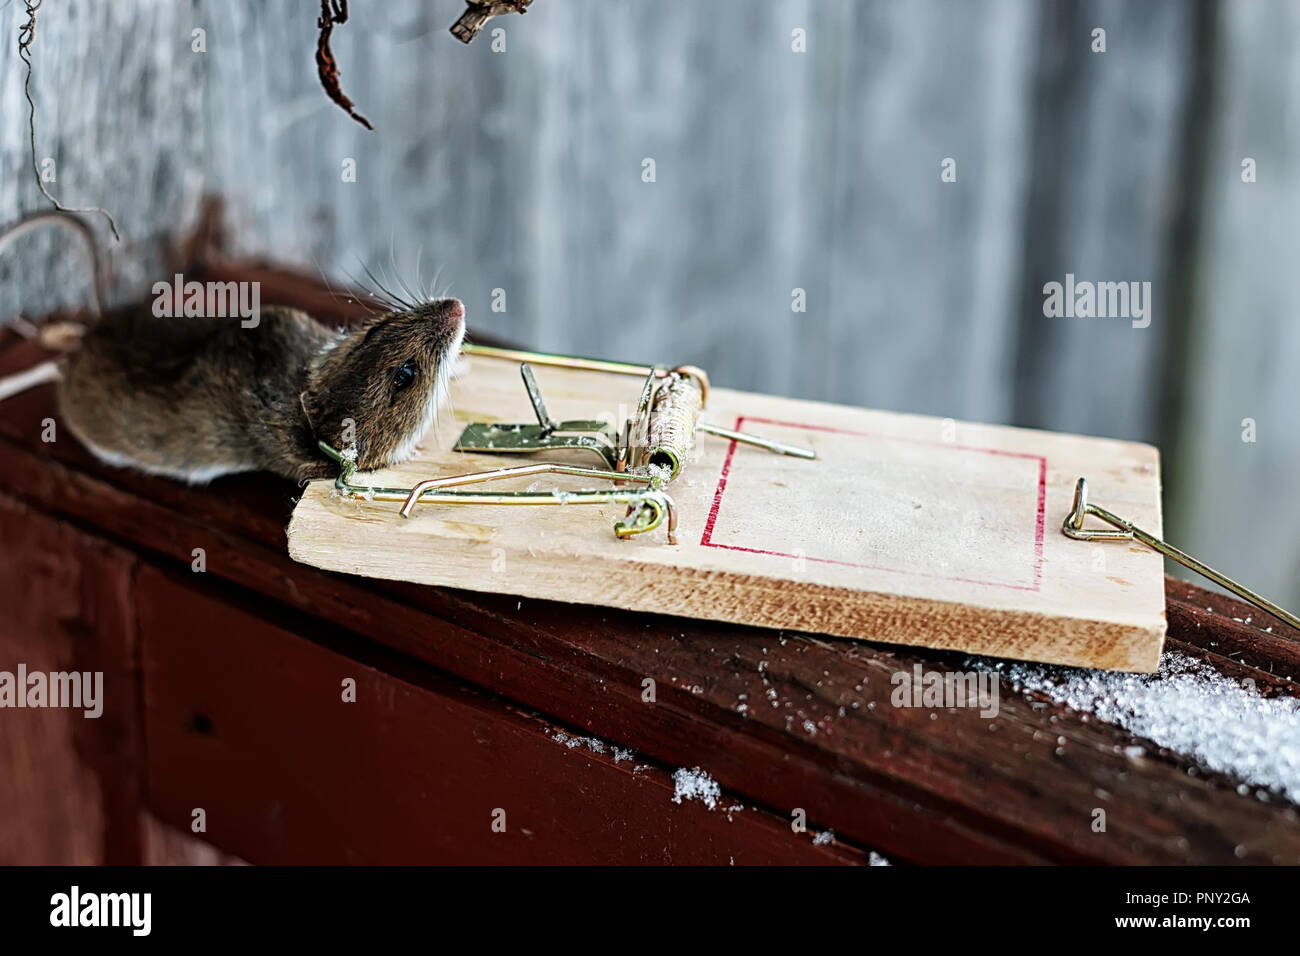 mouse in a mousetrap - Stock Image